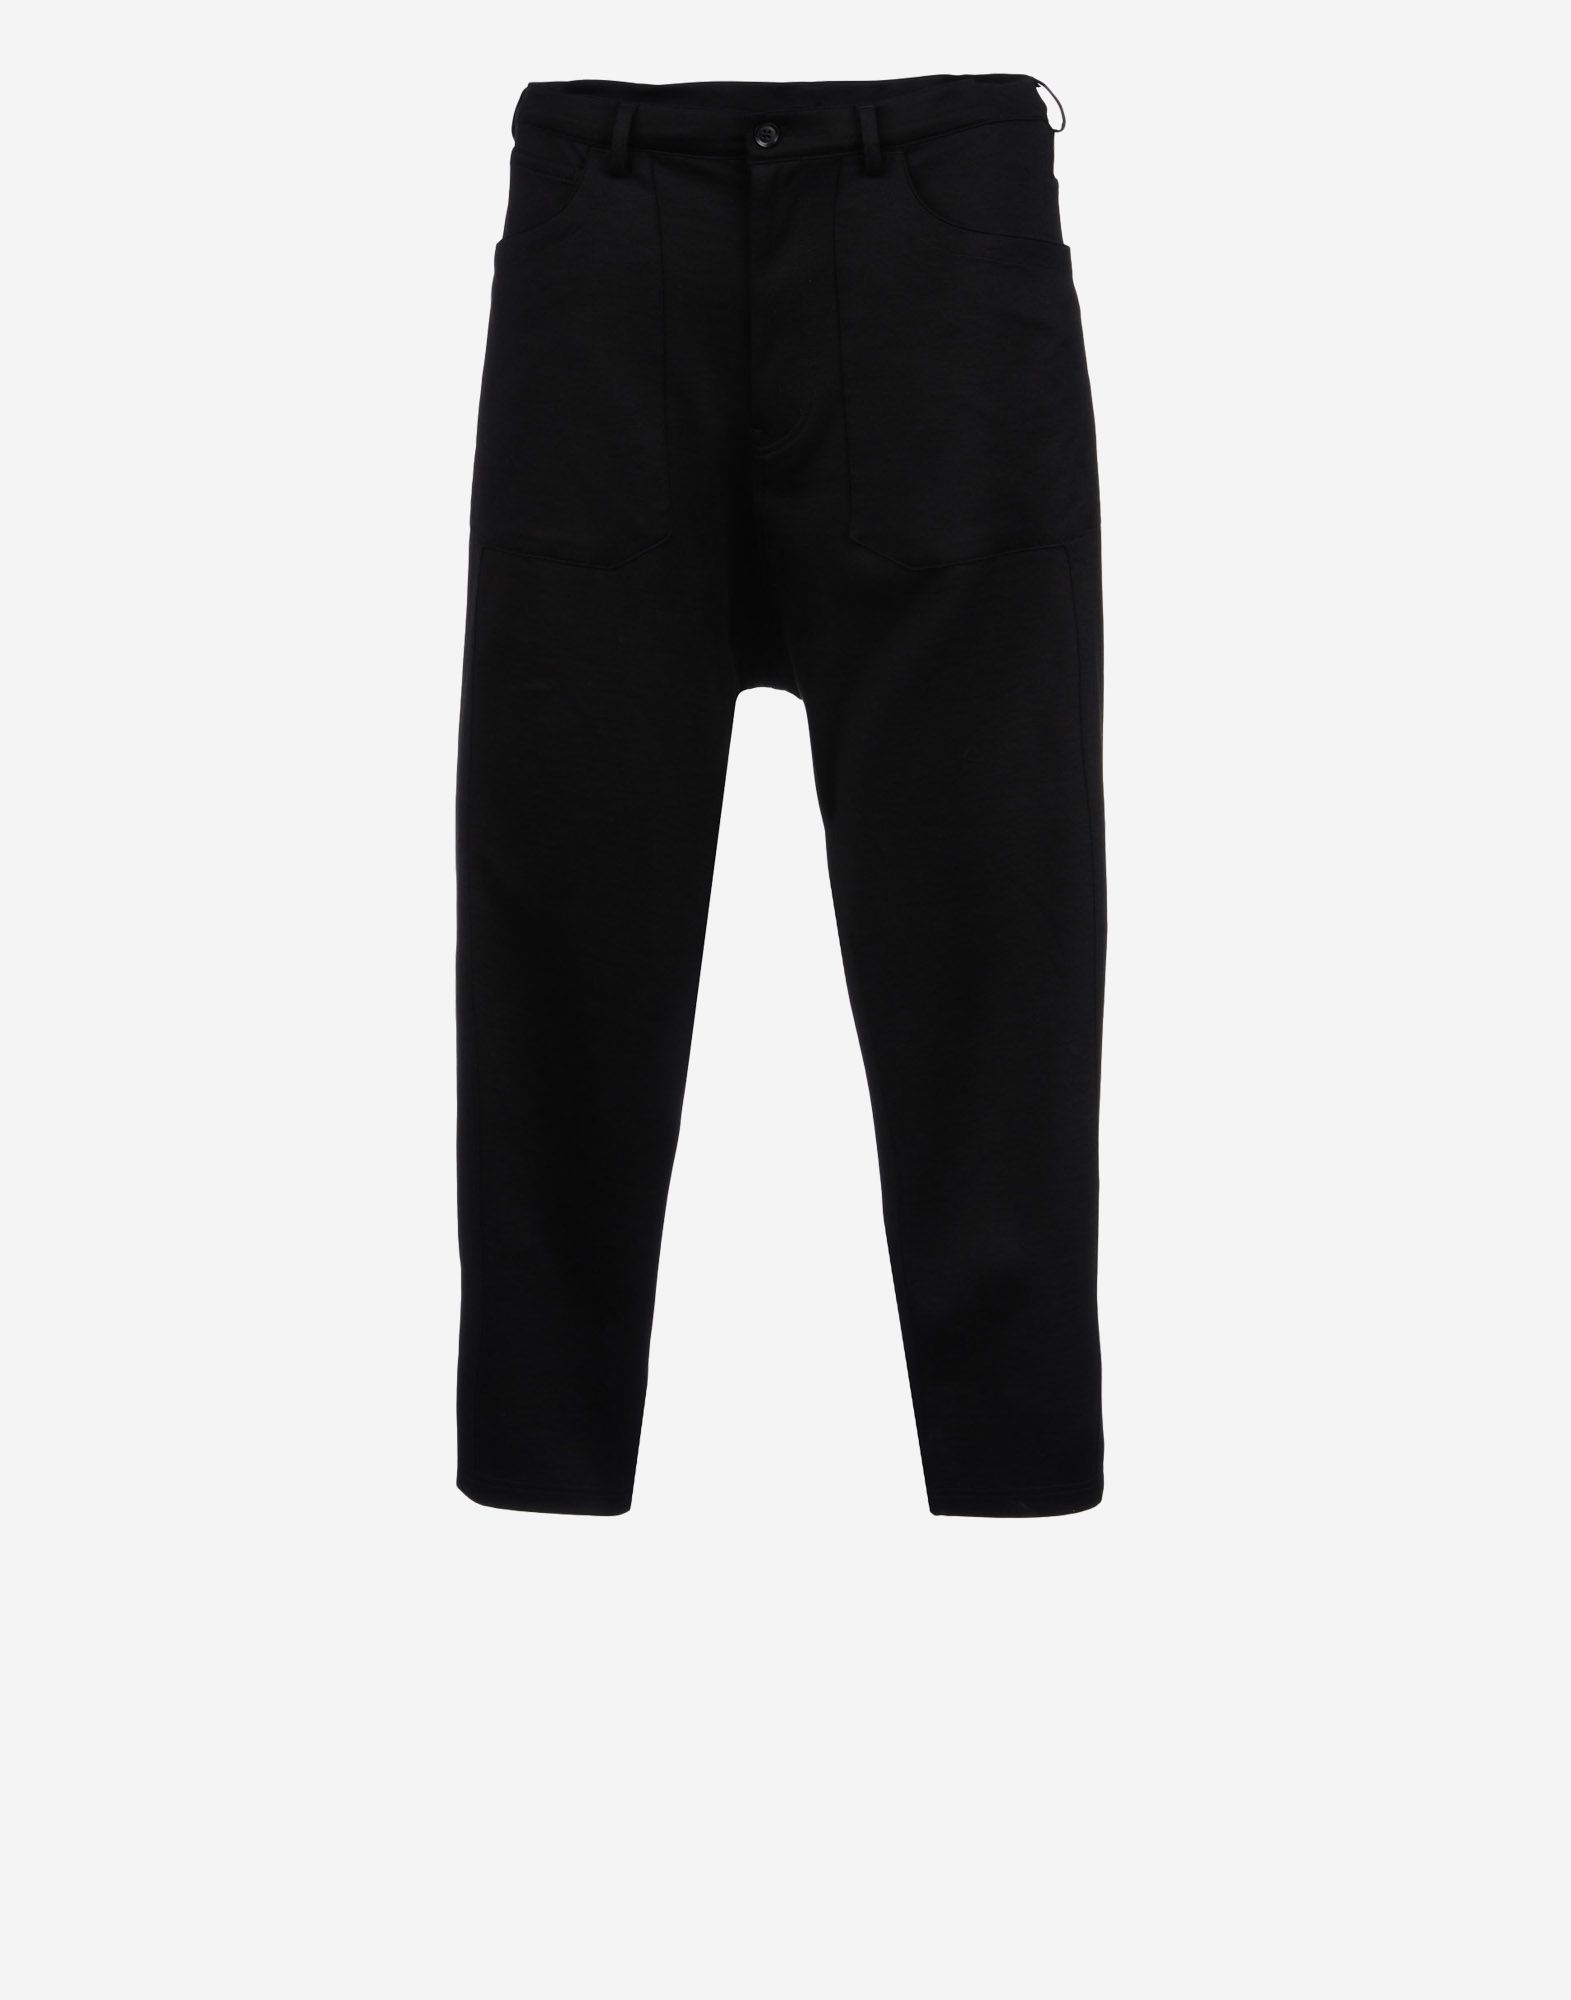 Casual pants PANTS man Y-3 adidas